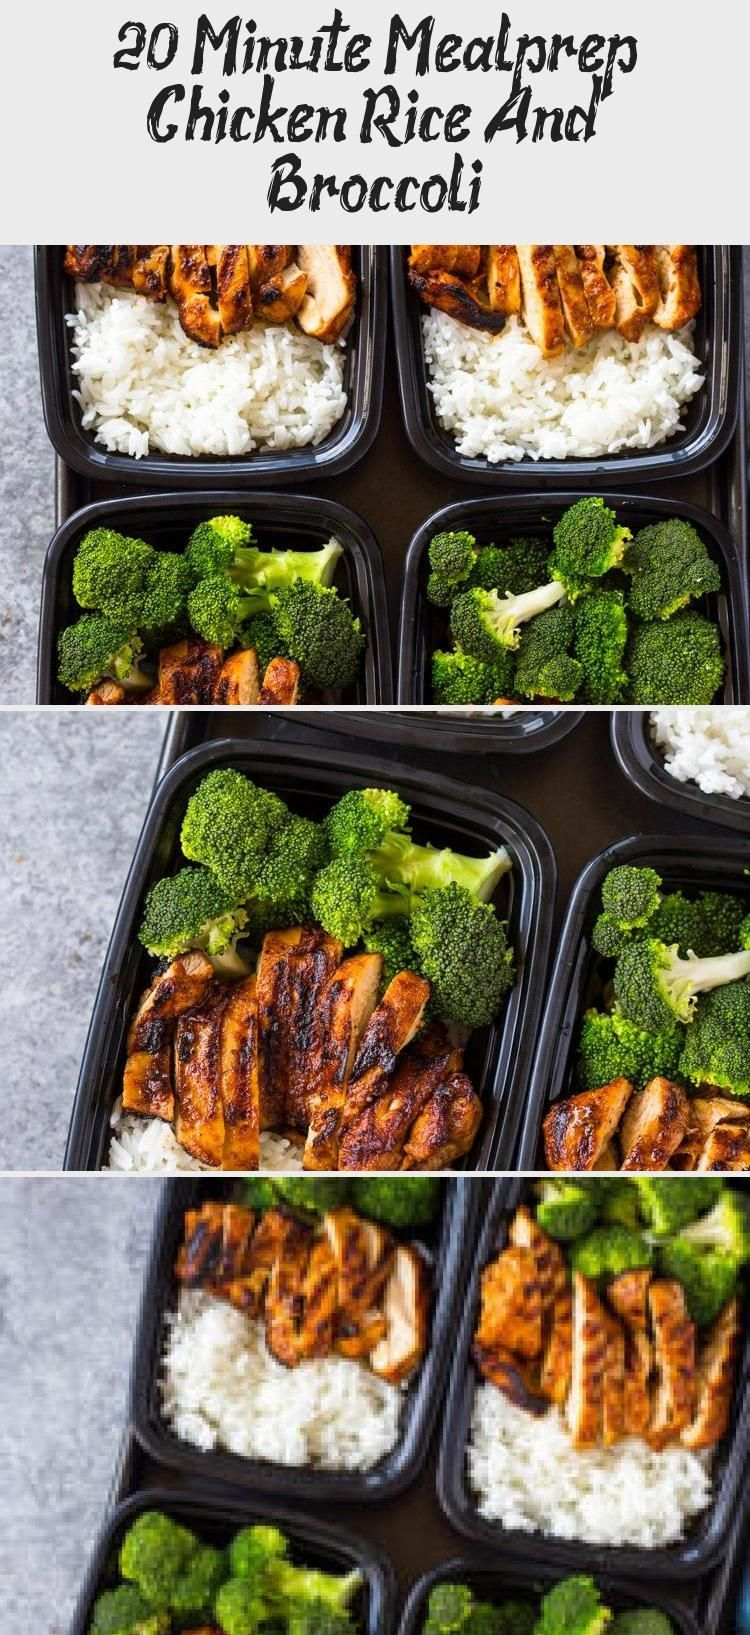 Quick skillet chicken rice and steam broccoli all made in under 20 minutes for a healthy mealprep lunch box that The employees those with limited time those who need to p...